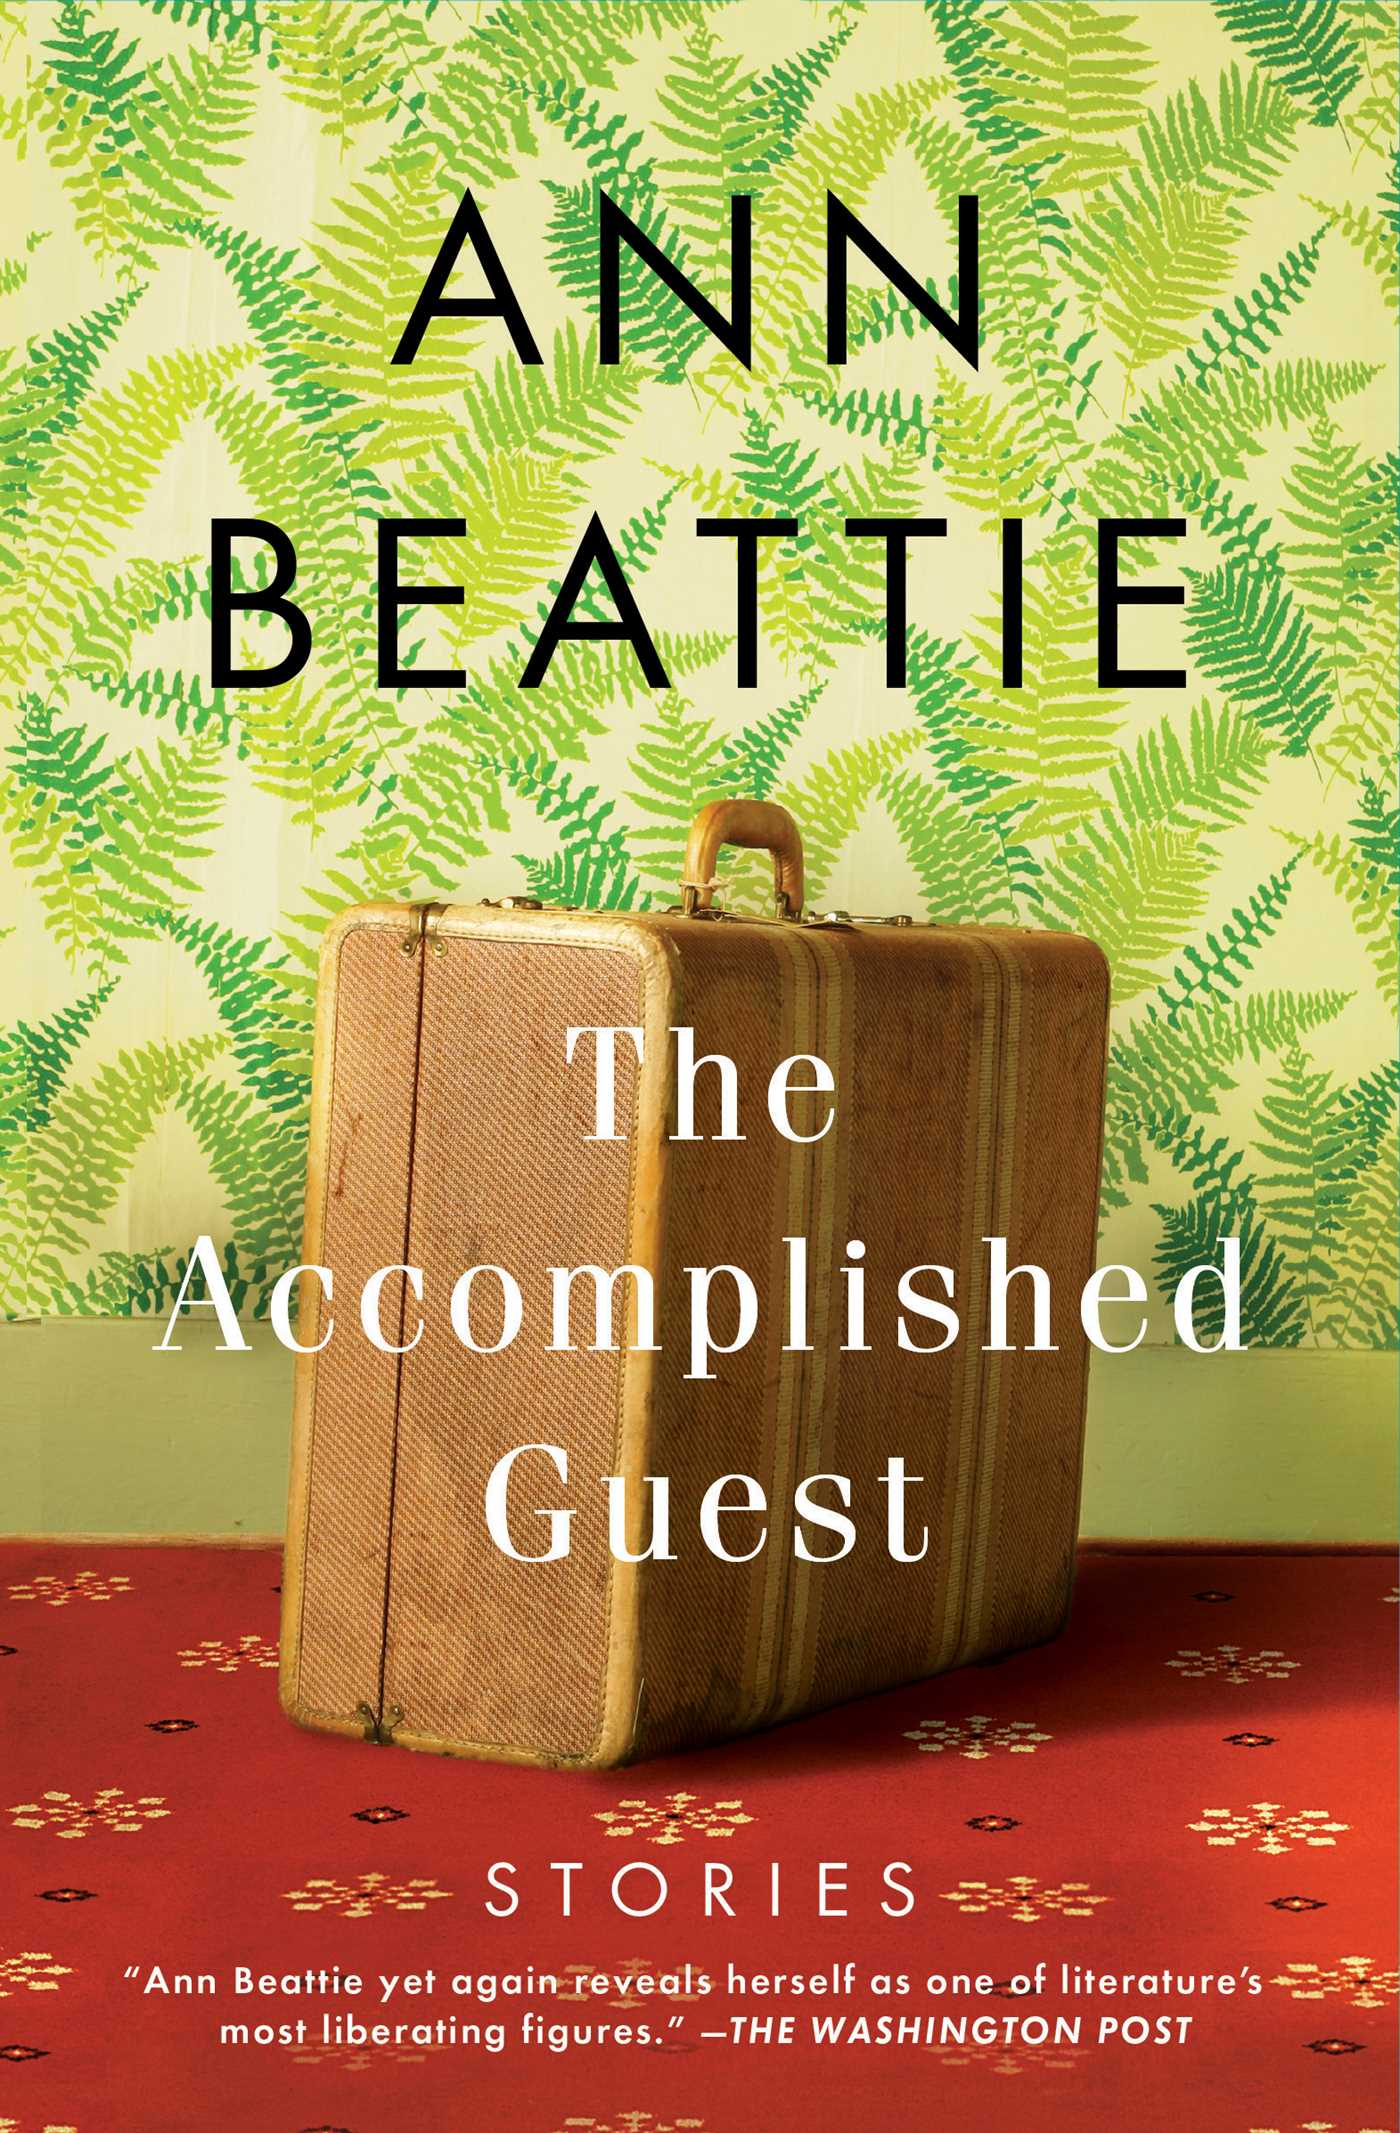 The accomplished guest 9781501111396 hr